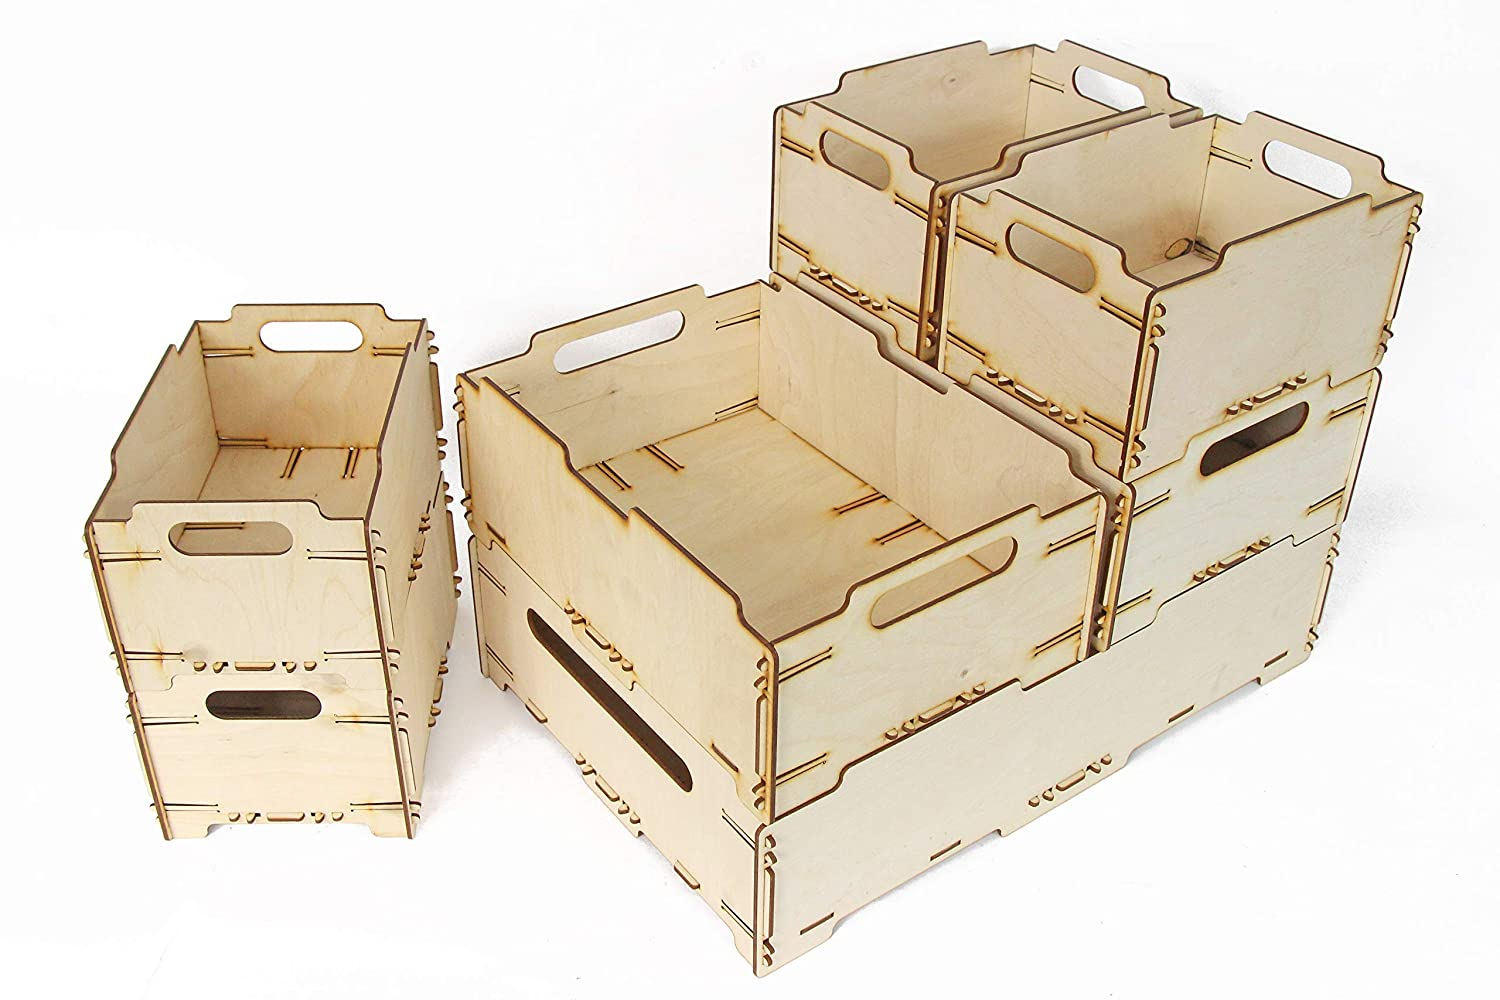 Handmade Wooden Crates 12.8 x 18.7 x 14.2 inches